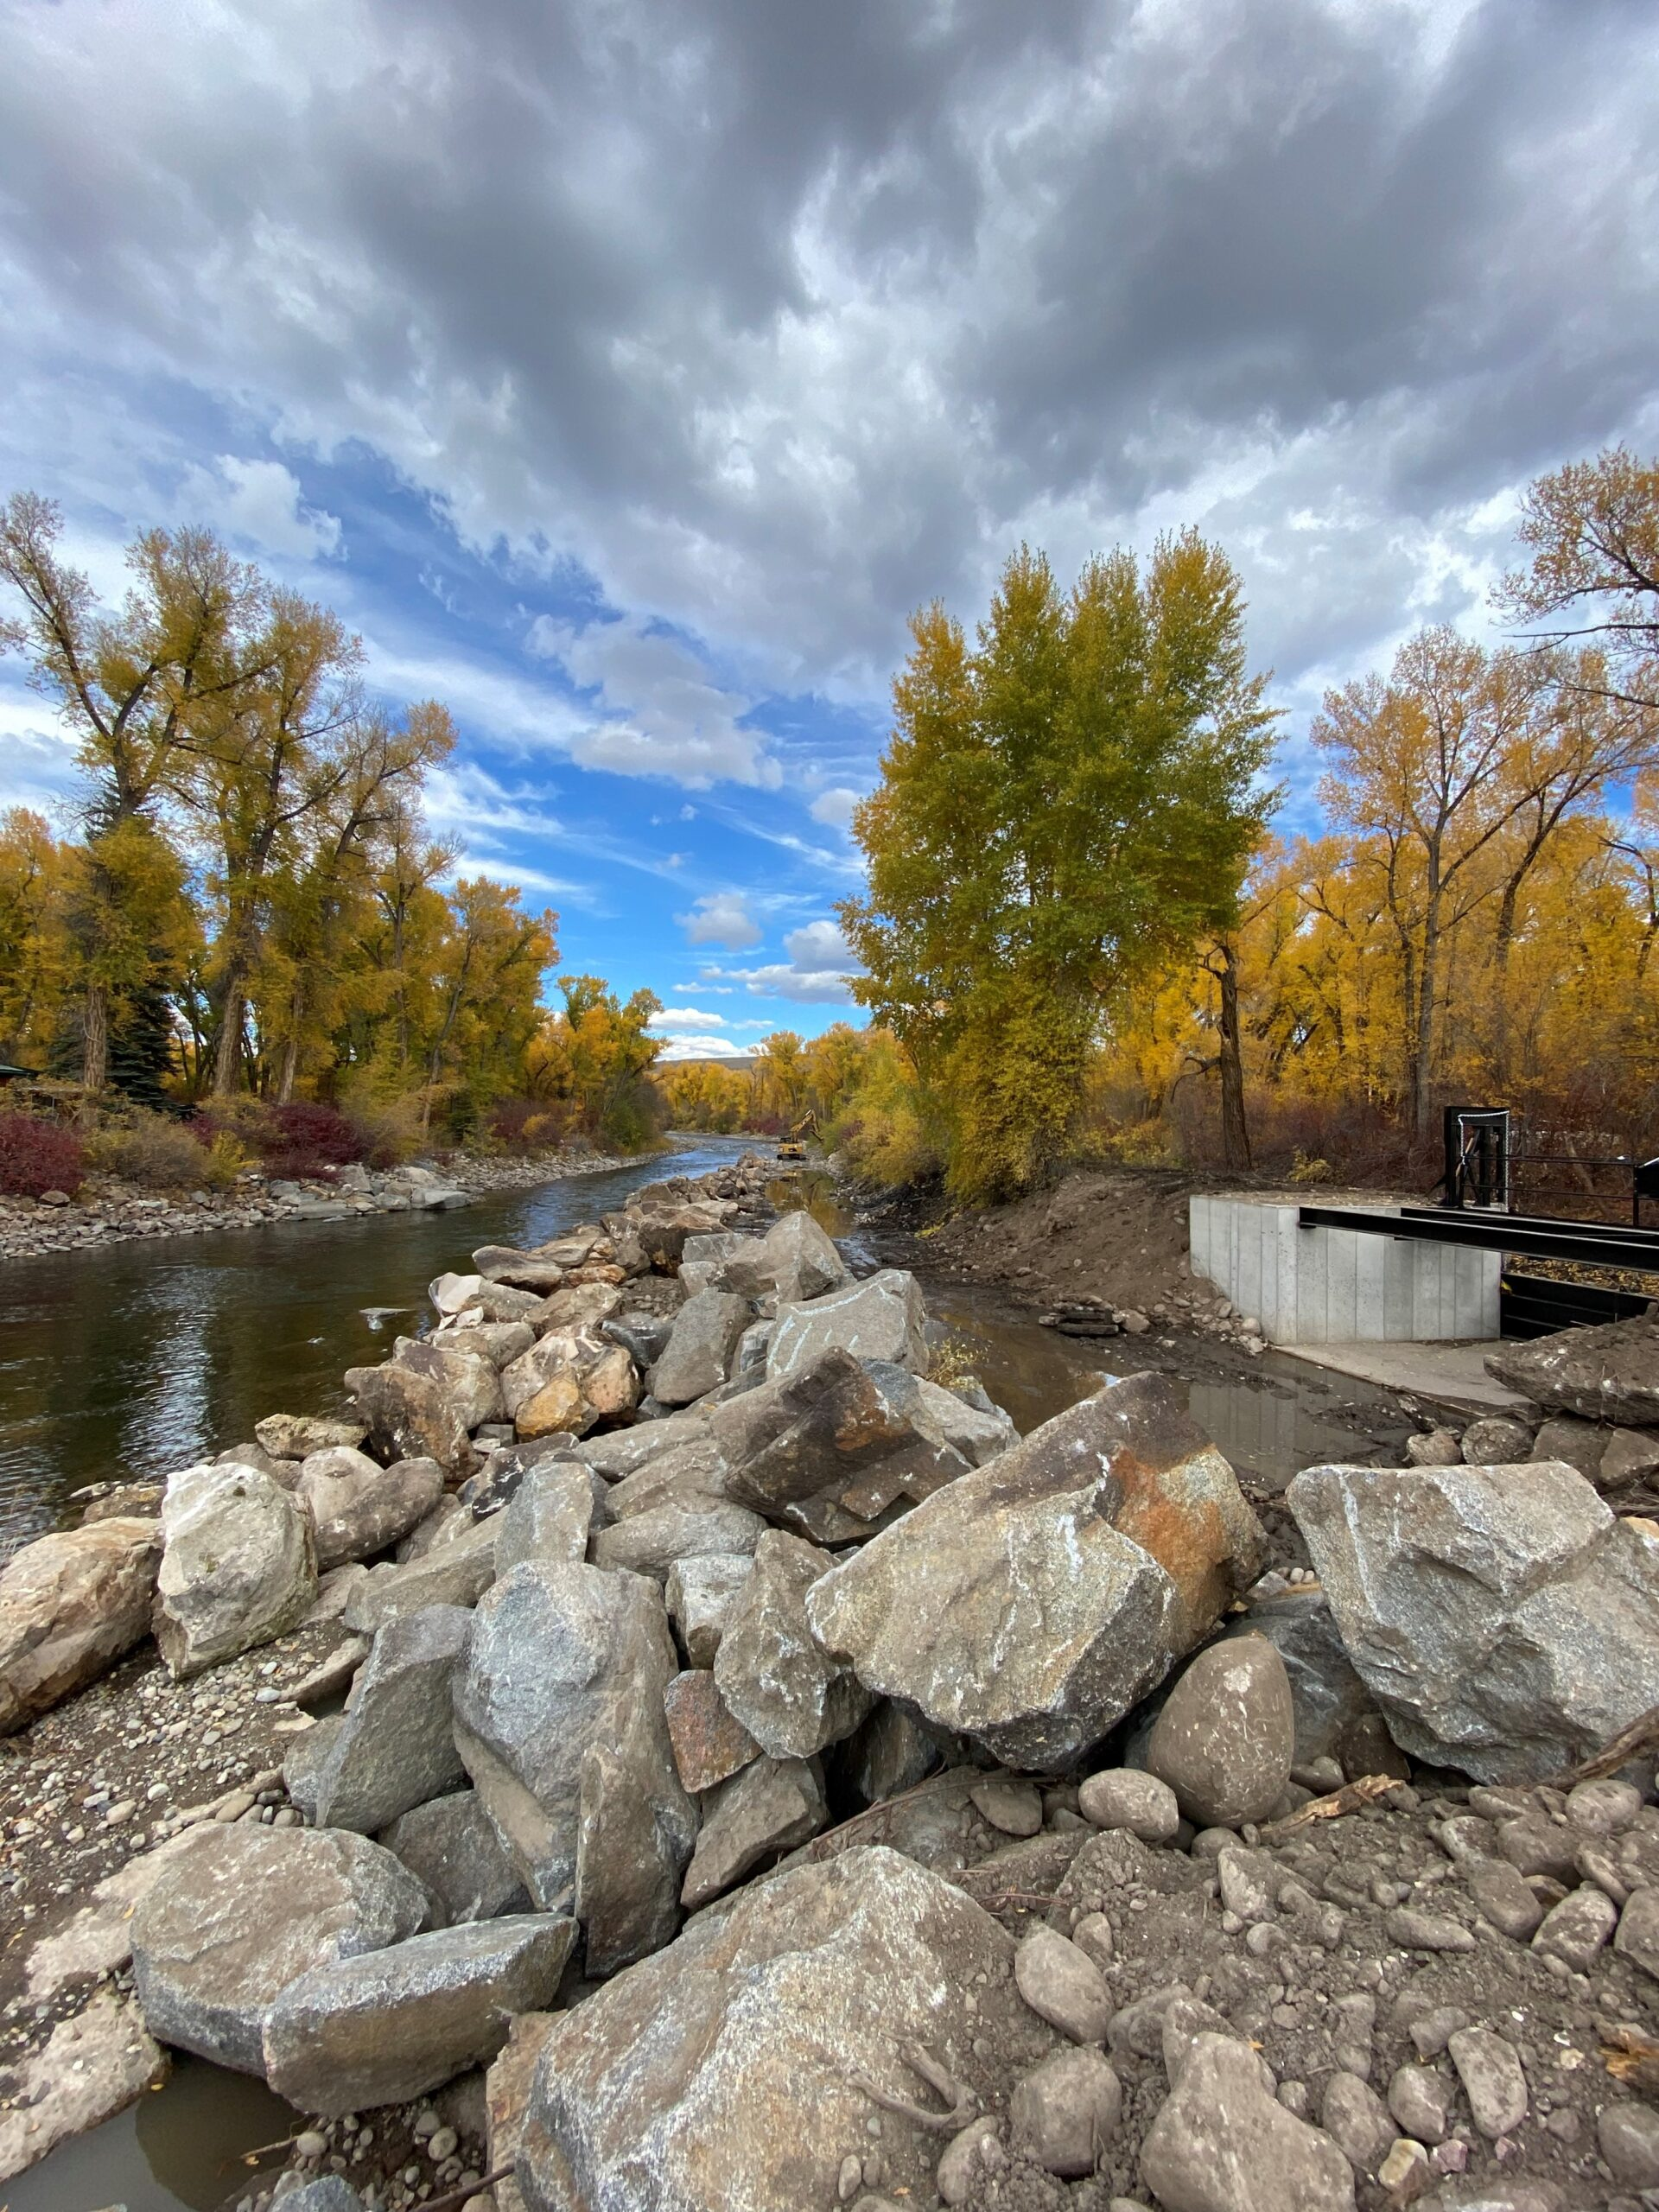 Gunnison River Outcault Project from Sonja 10-2021